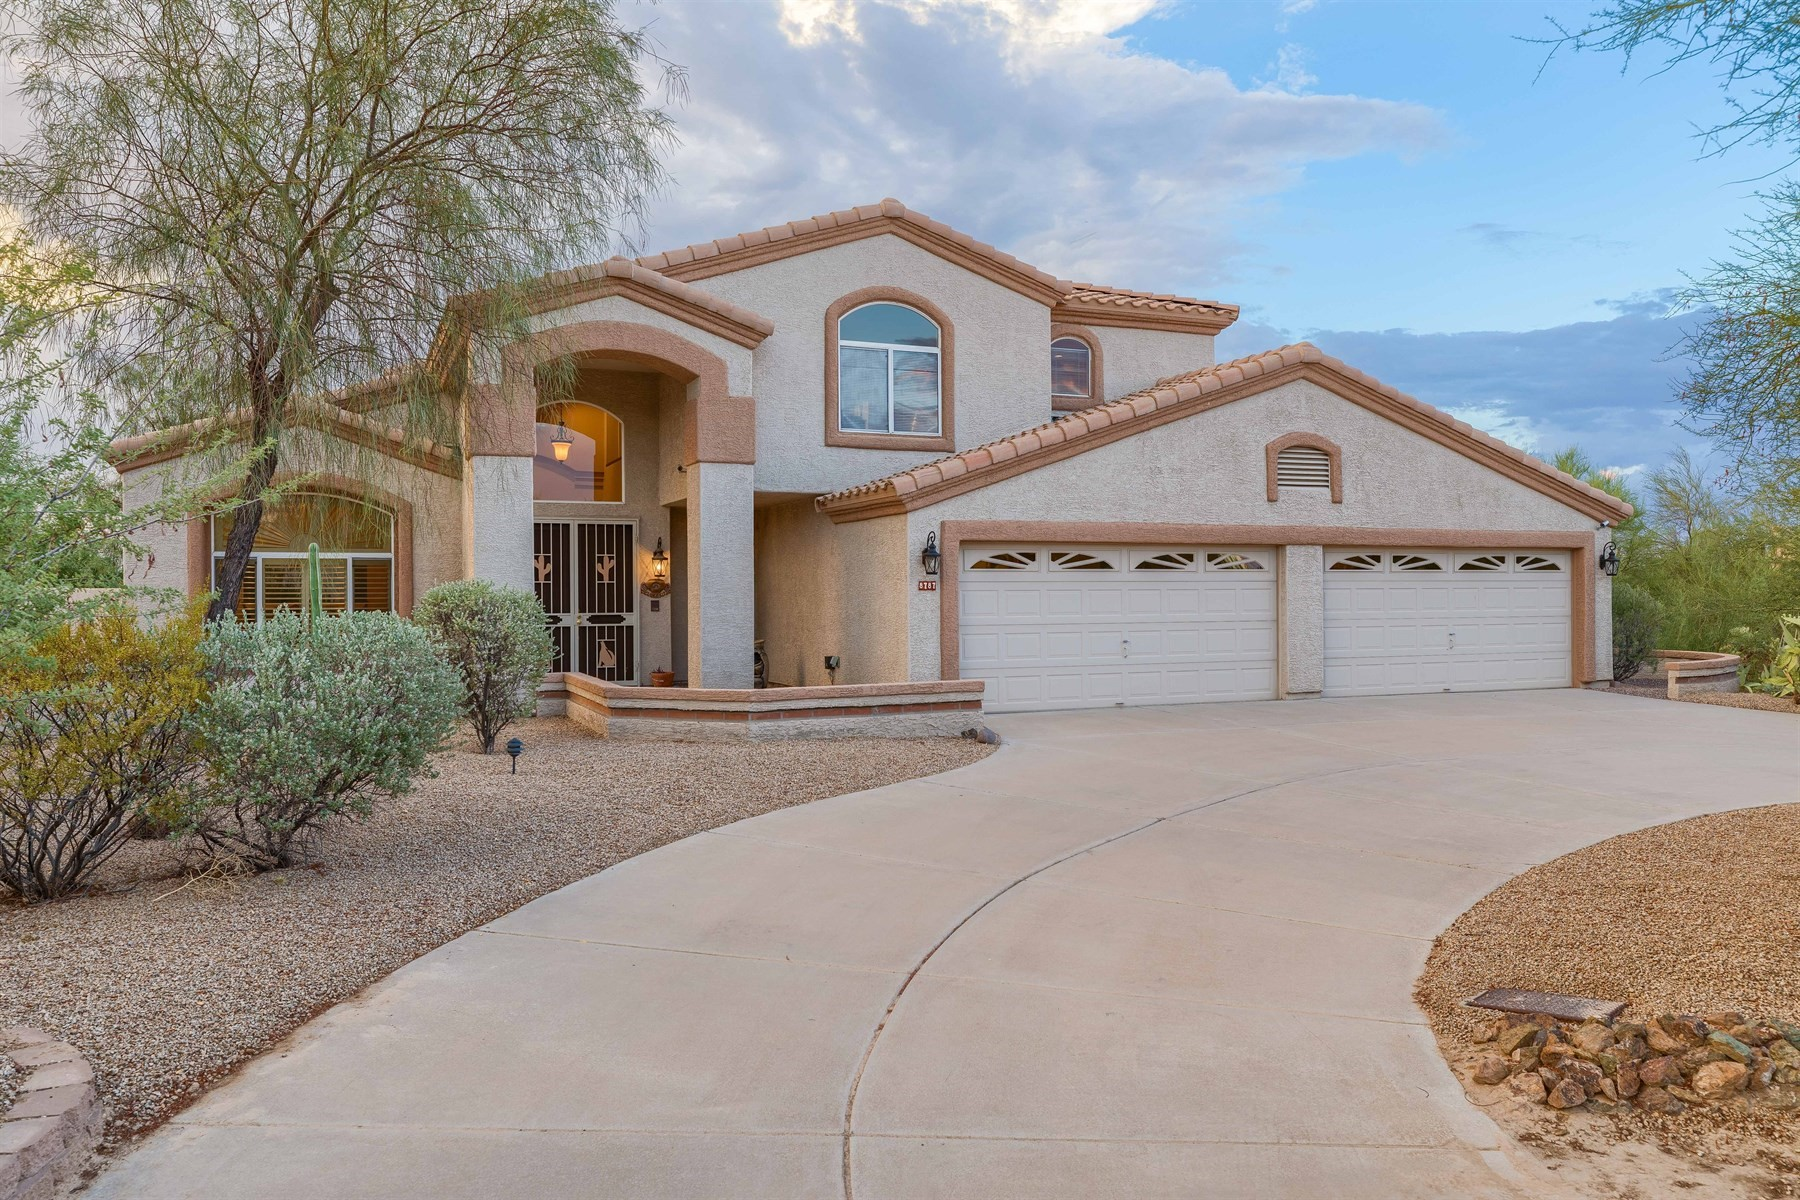 Single Family Home for Sale at North Scottsdale beauty with desert views 8787 E Lariat Ln, Scottsdale, Arizona, 85255 United States